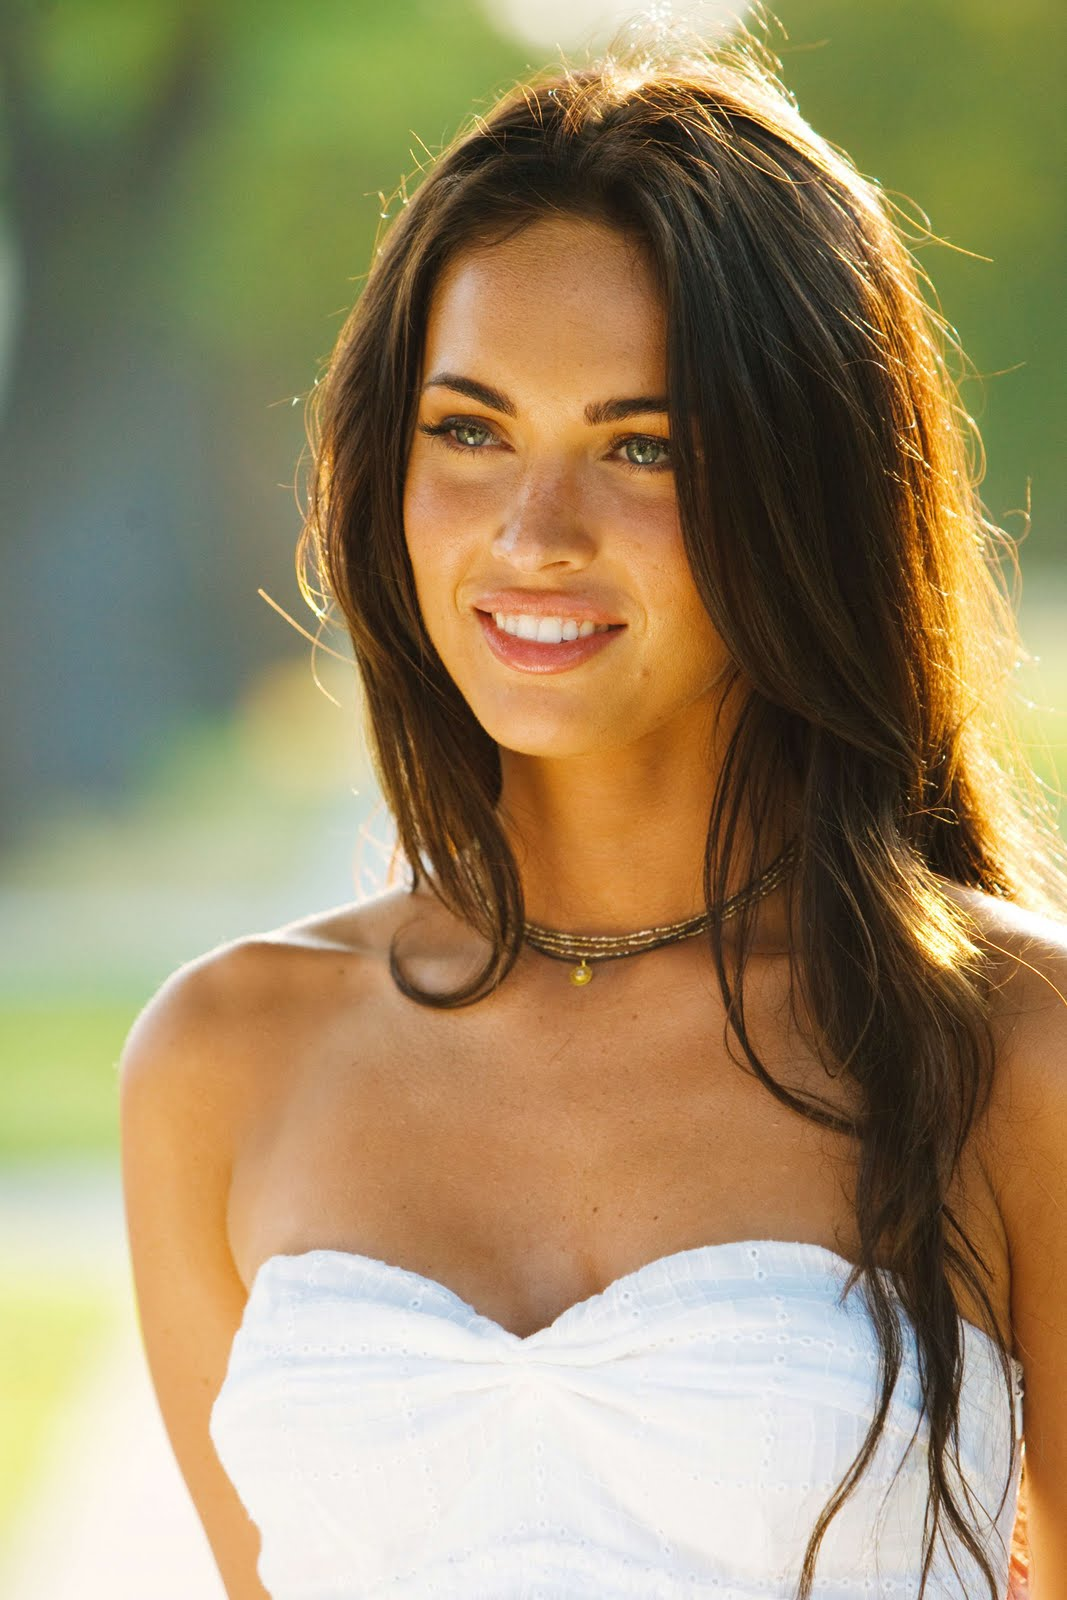 Megan fox plastic surgery has become a hot topic since she is a star